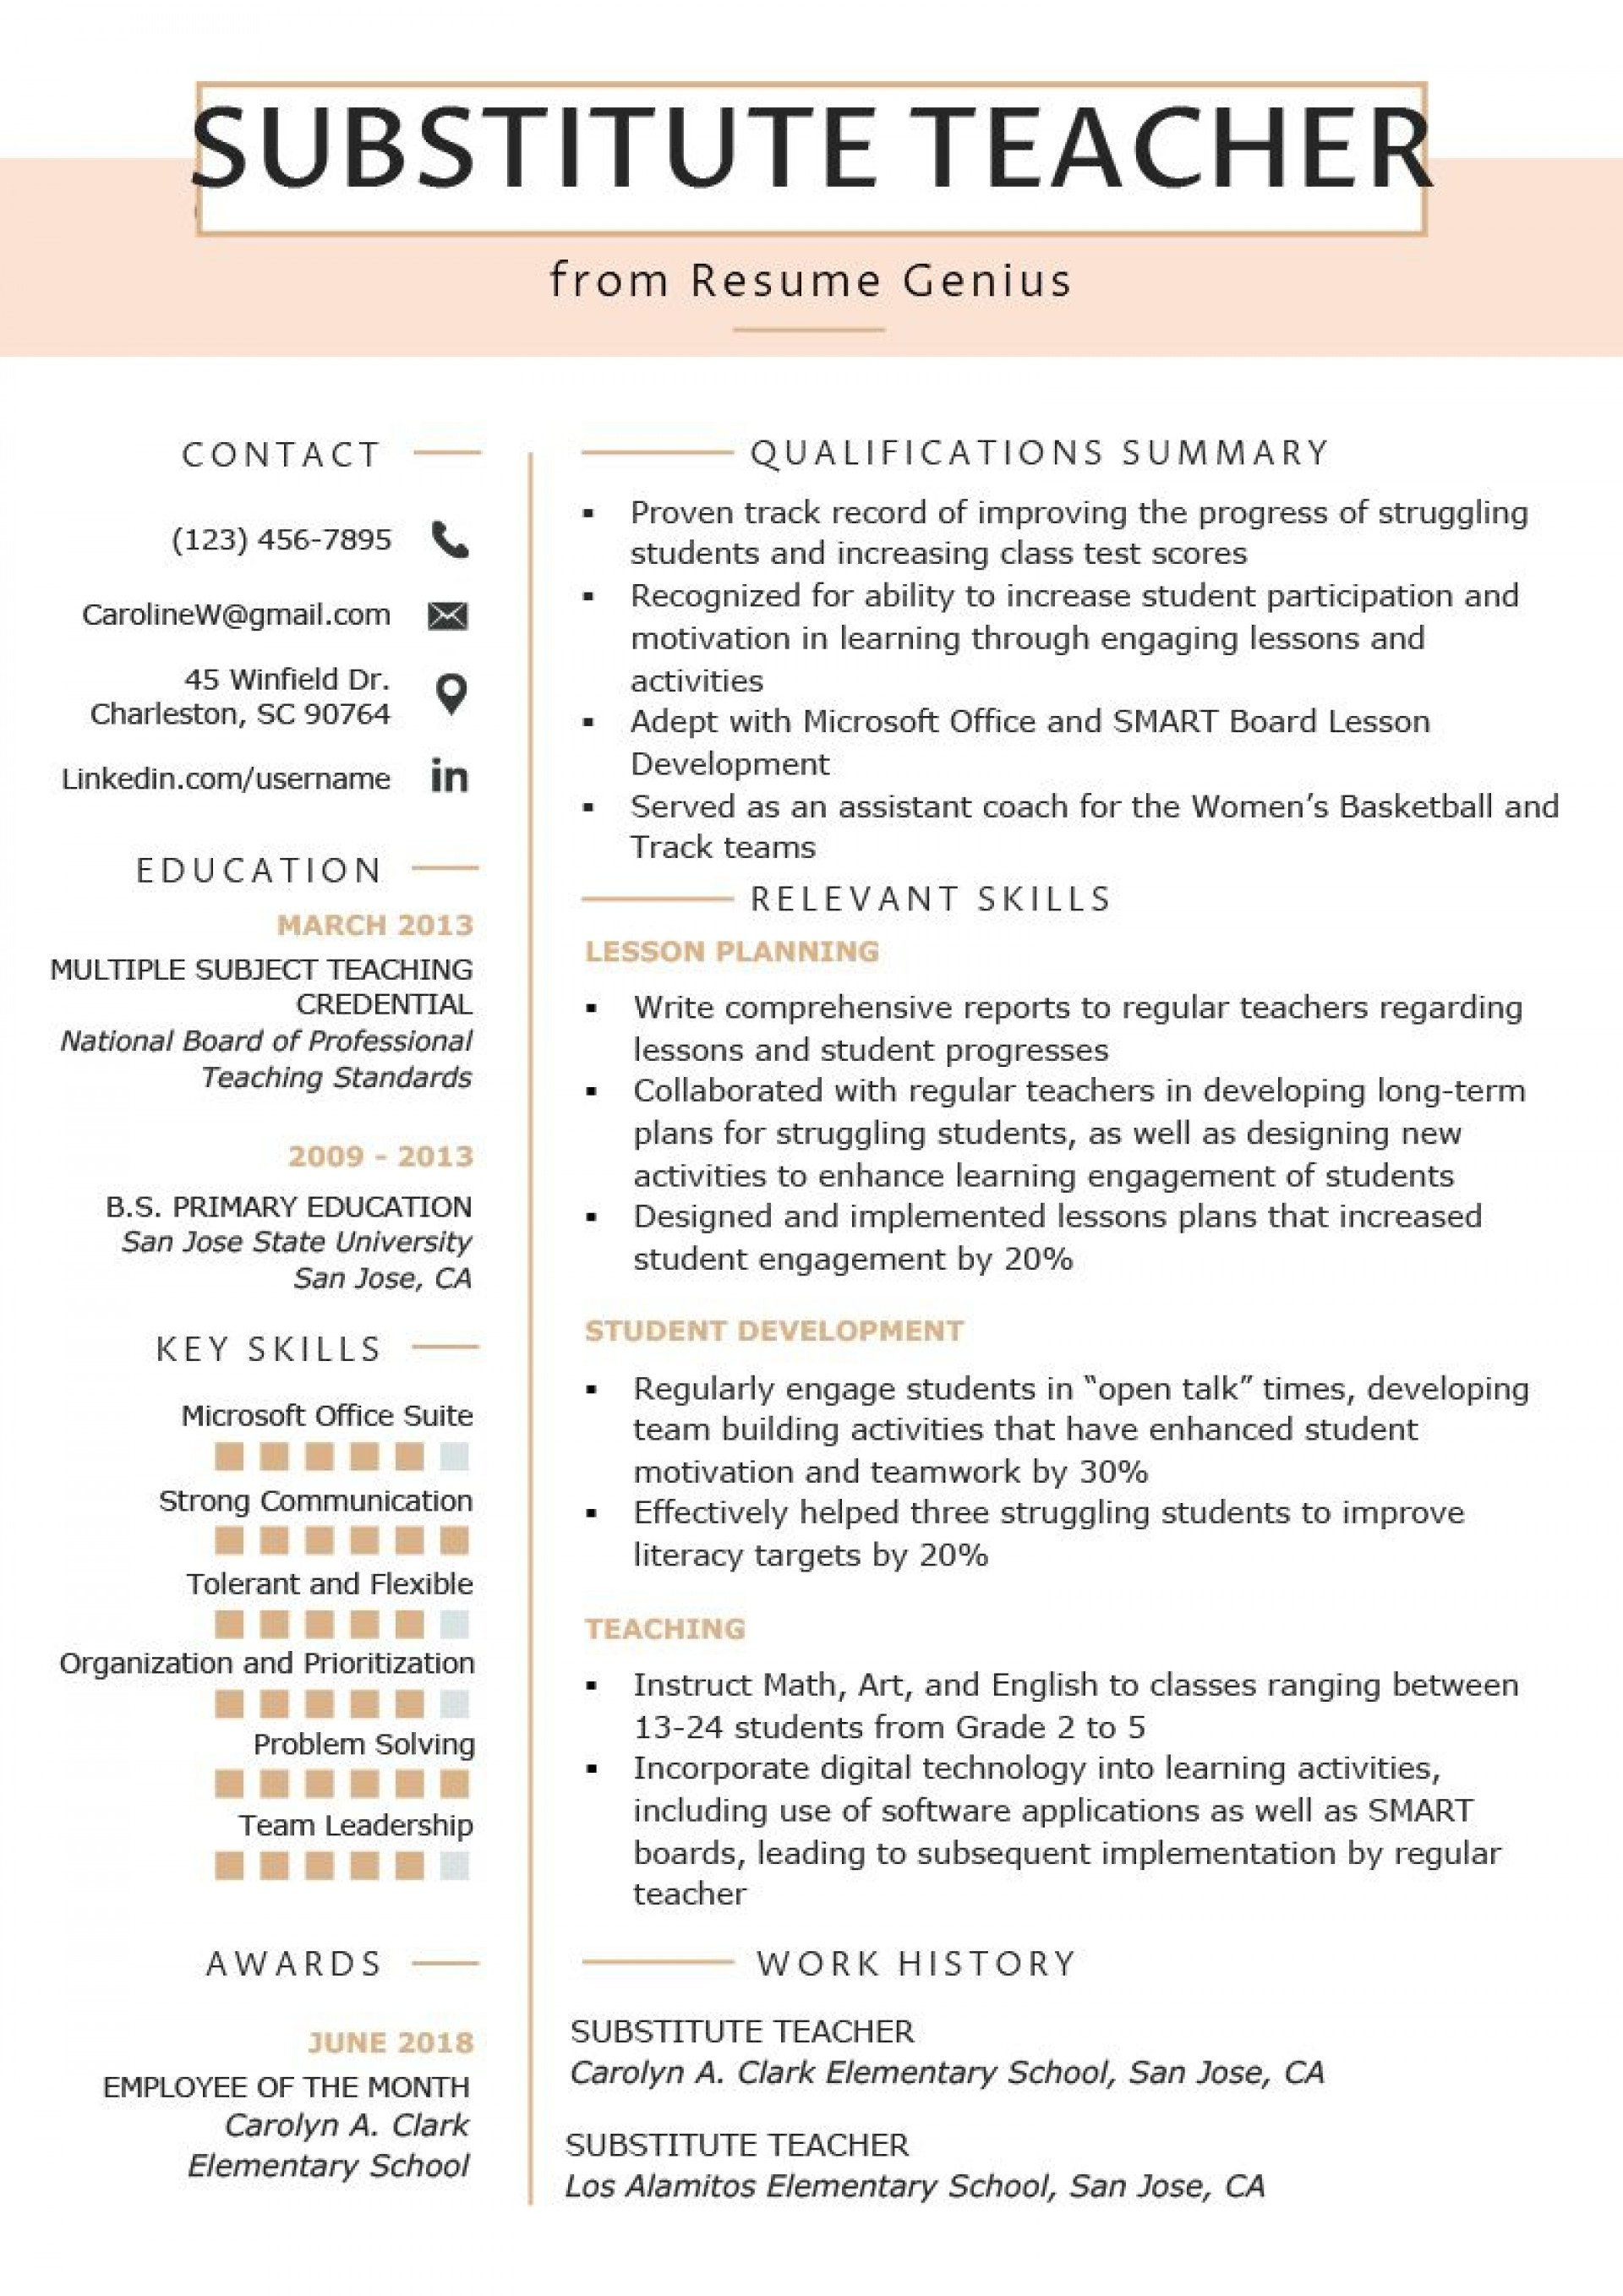 002 Incredible Resume Template For Teacher Picture  Australia Microsoft Word Sample1920